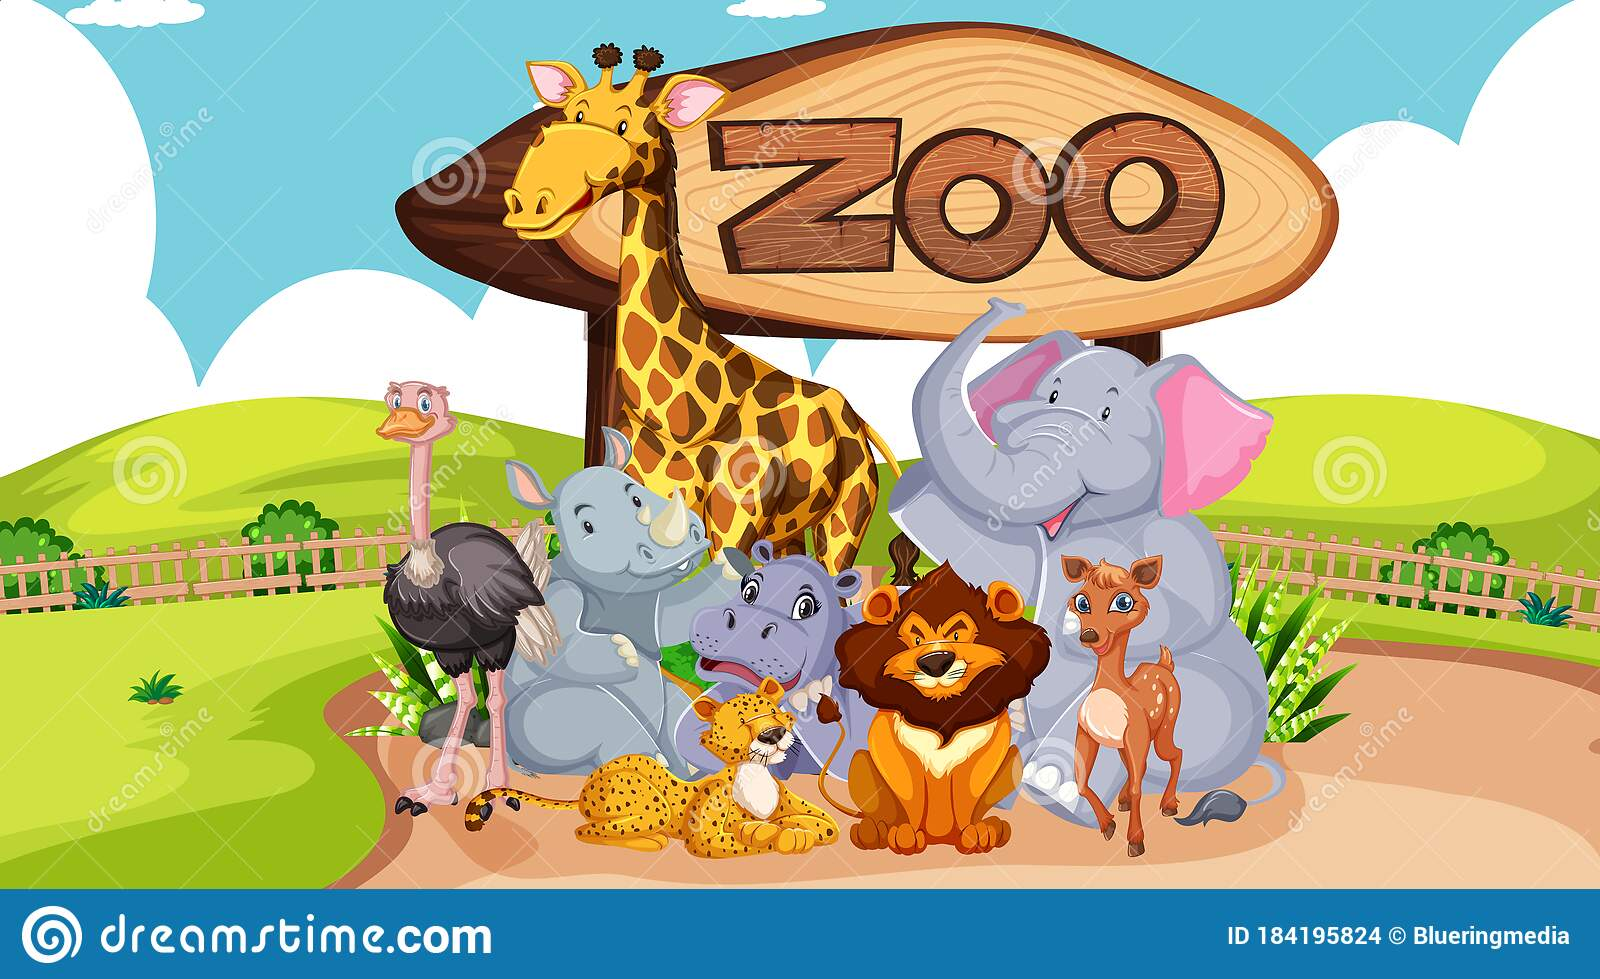 Group Of Animals With Zoo Sign Stock Vector - Illustration of elephant,  cartoon: 184195824